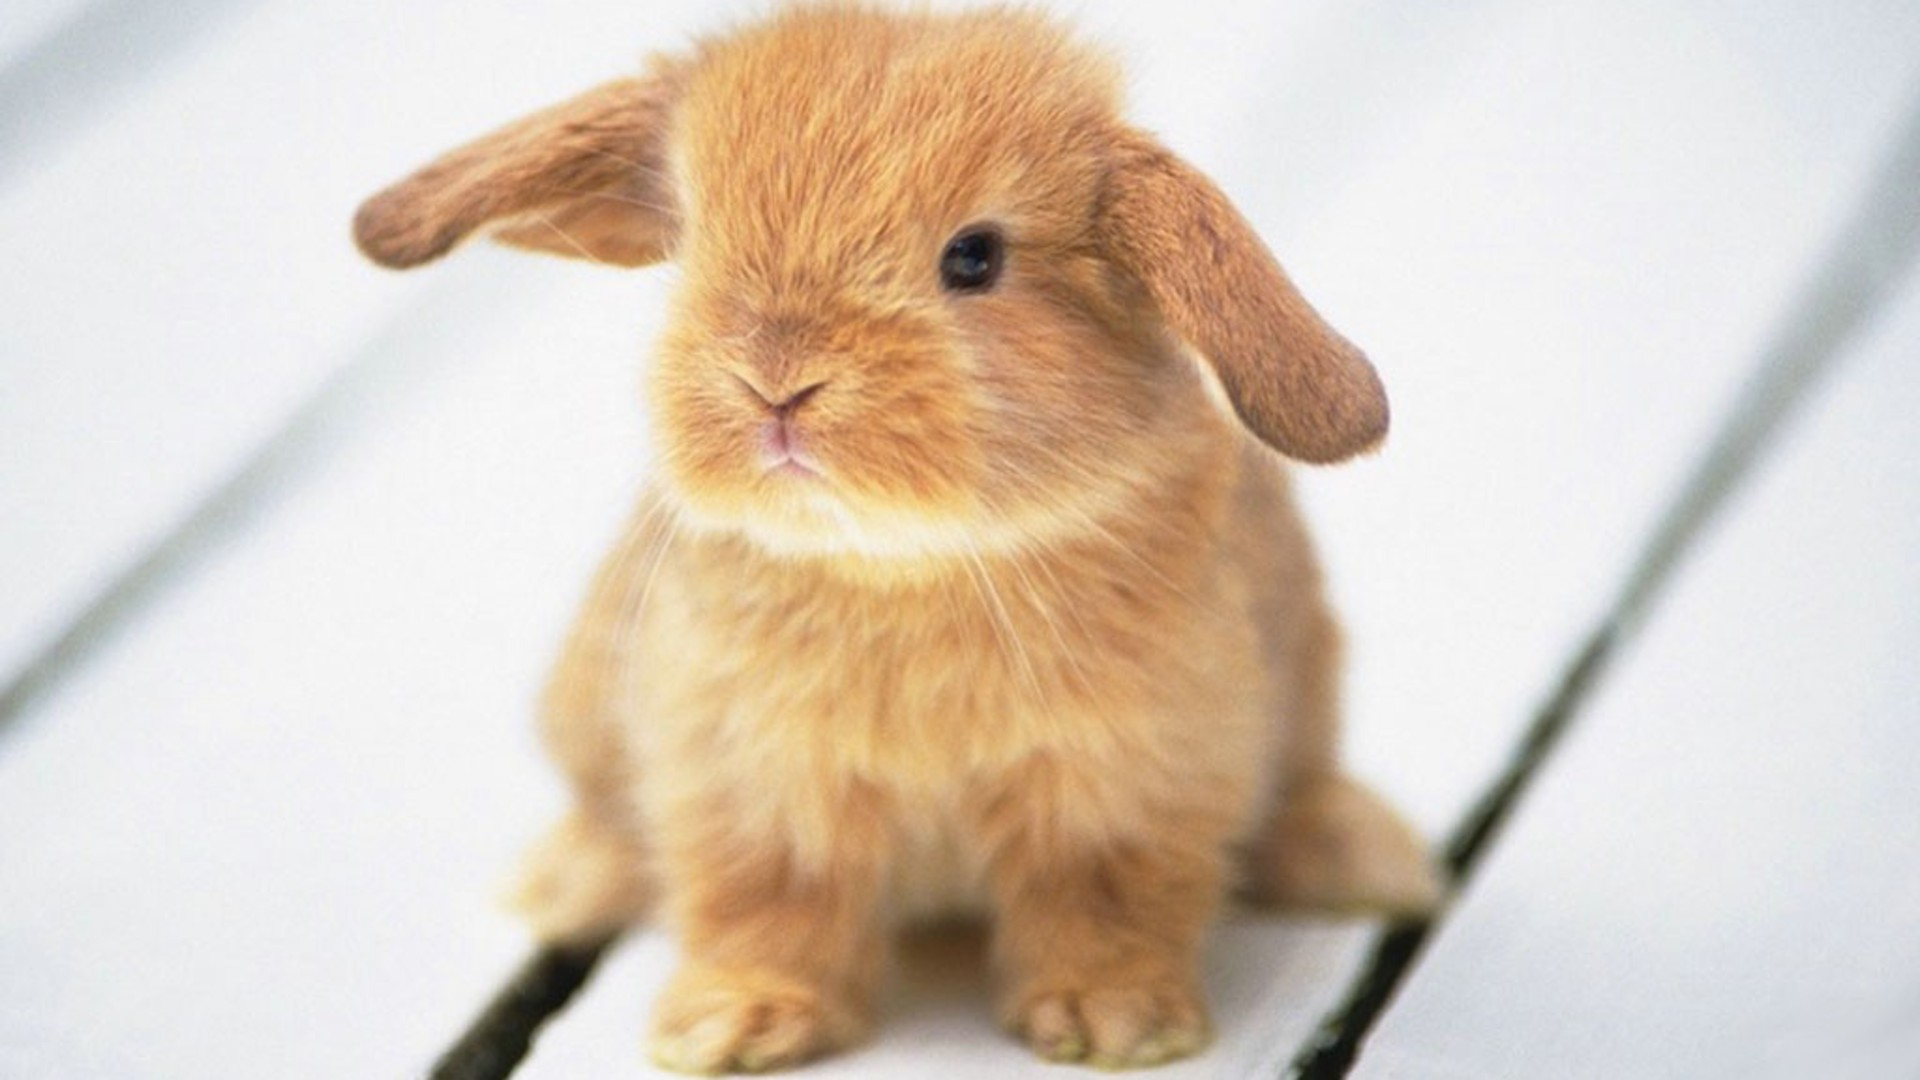 Baby Bunny Wallpaper 39767